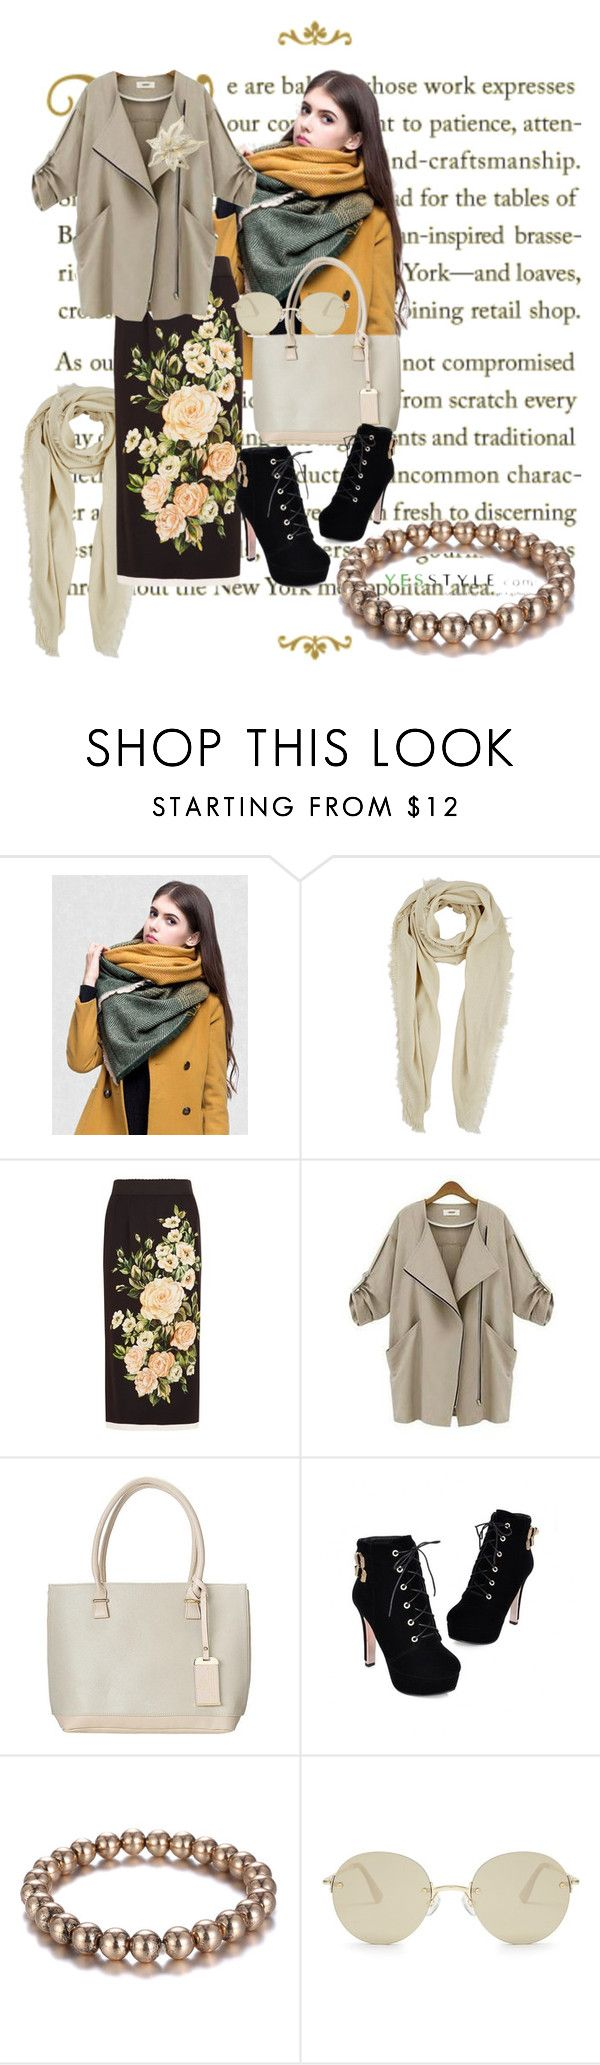 """""""Yesstyle"""" by vaslida ❤ liked on Polyvore featuring Buji Baja, Dolce&Gabbana, Eloqueen. """""""